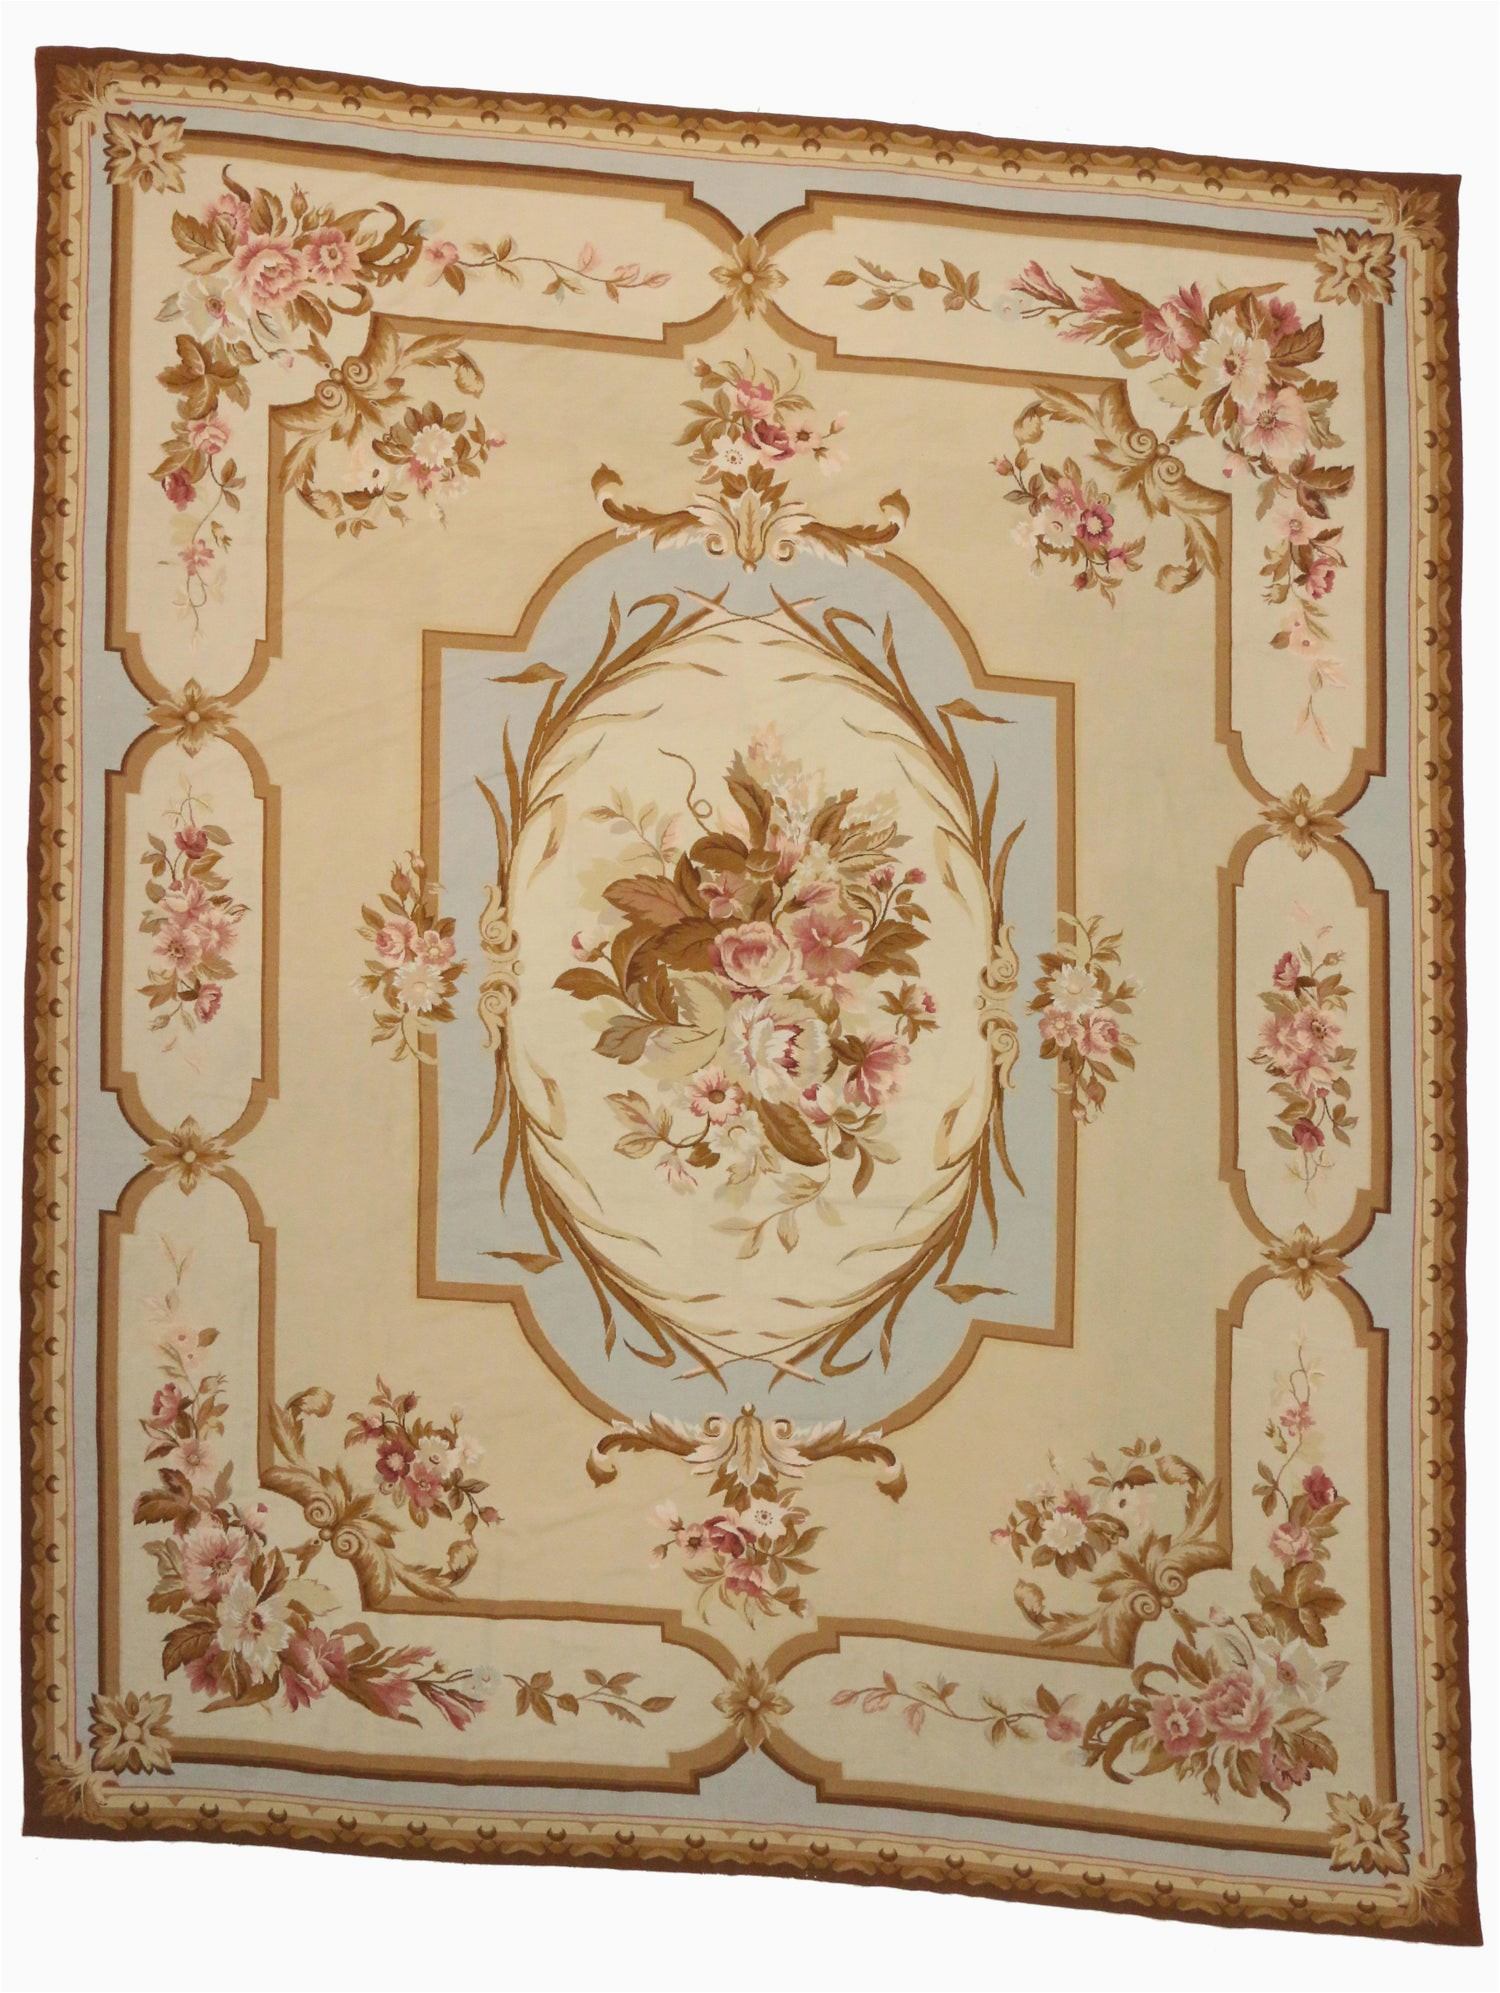 French Country Style area Rugs Vintage Chinese Needlepoint Rug with Aubusson Design and French Provincial Style